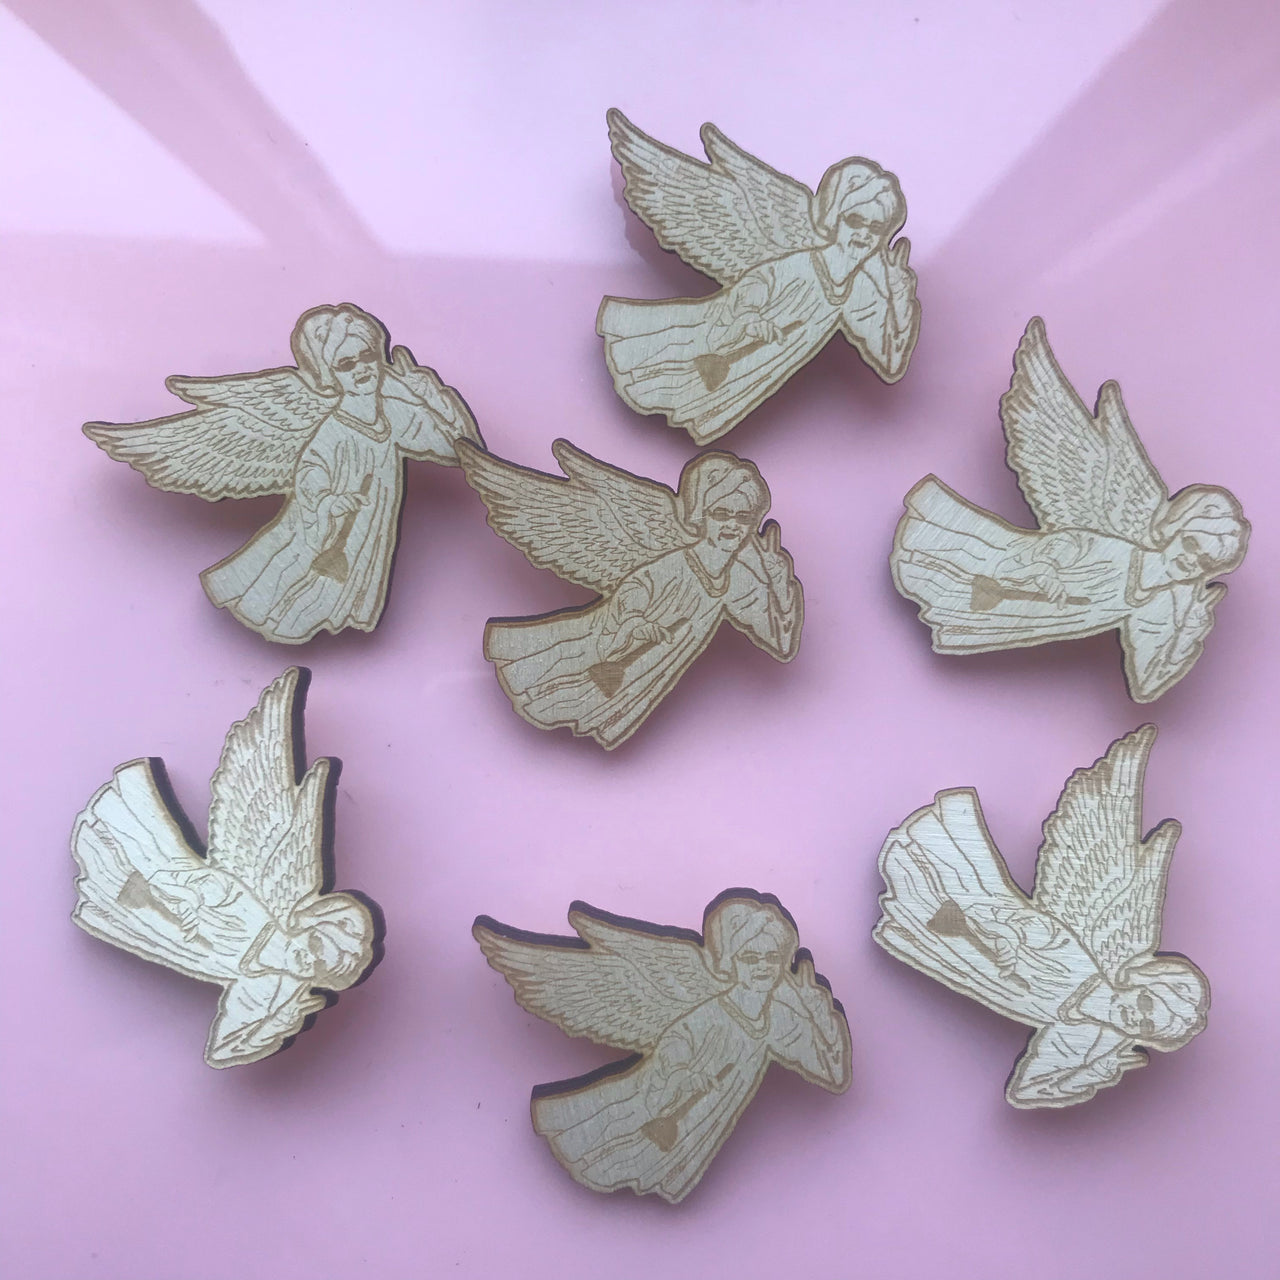 Lewis Capaldi Angel Brooch Pin Badge